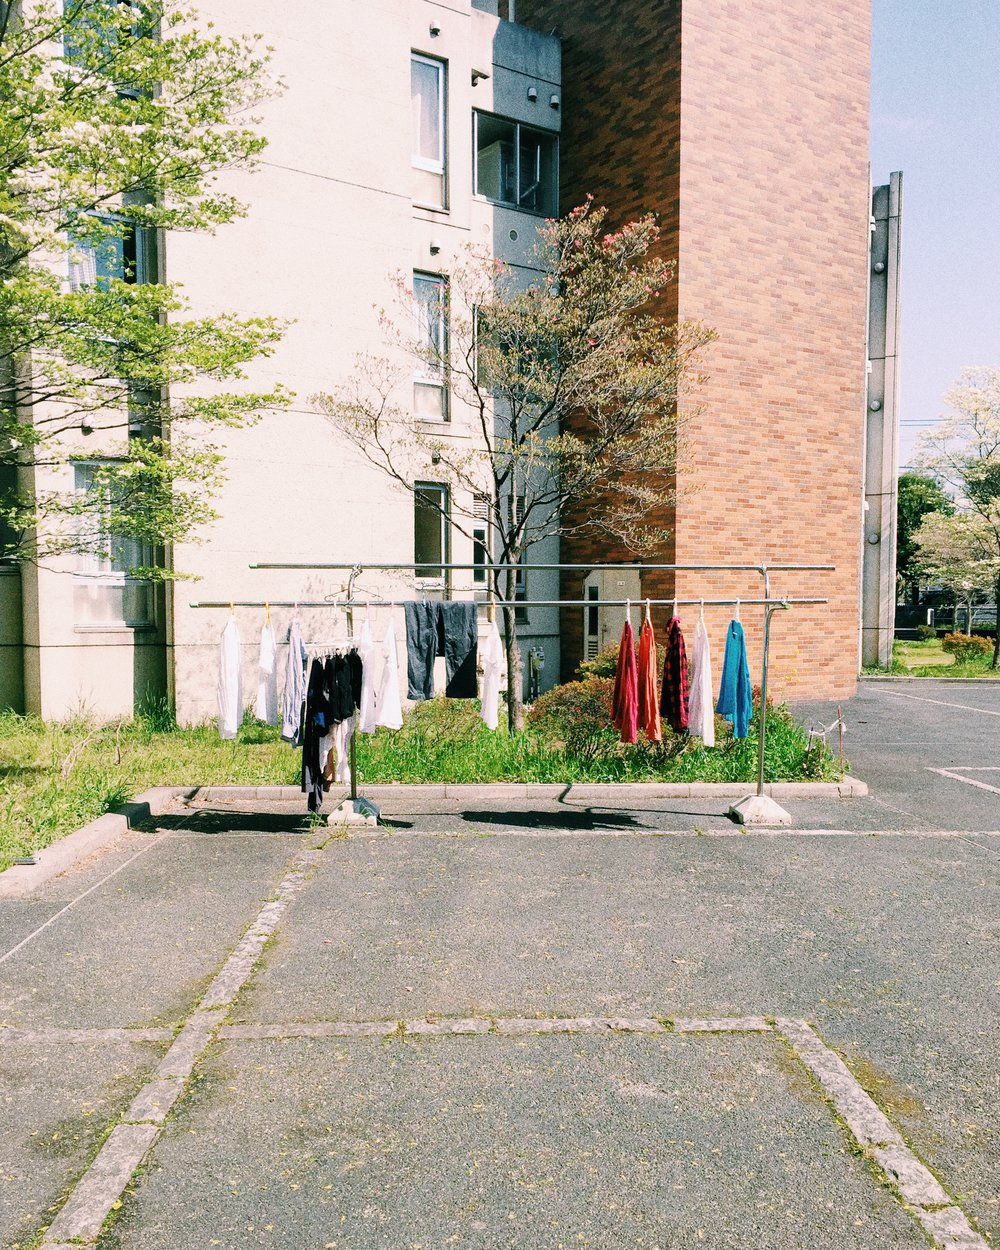 Mitaka International Hall of Residence, Spring 2015.